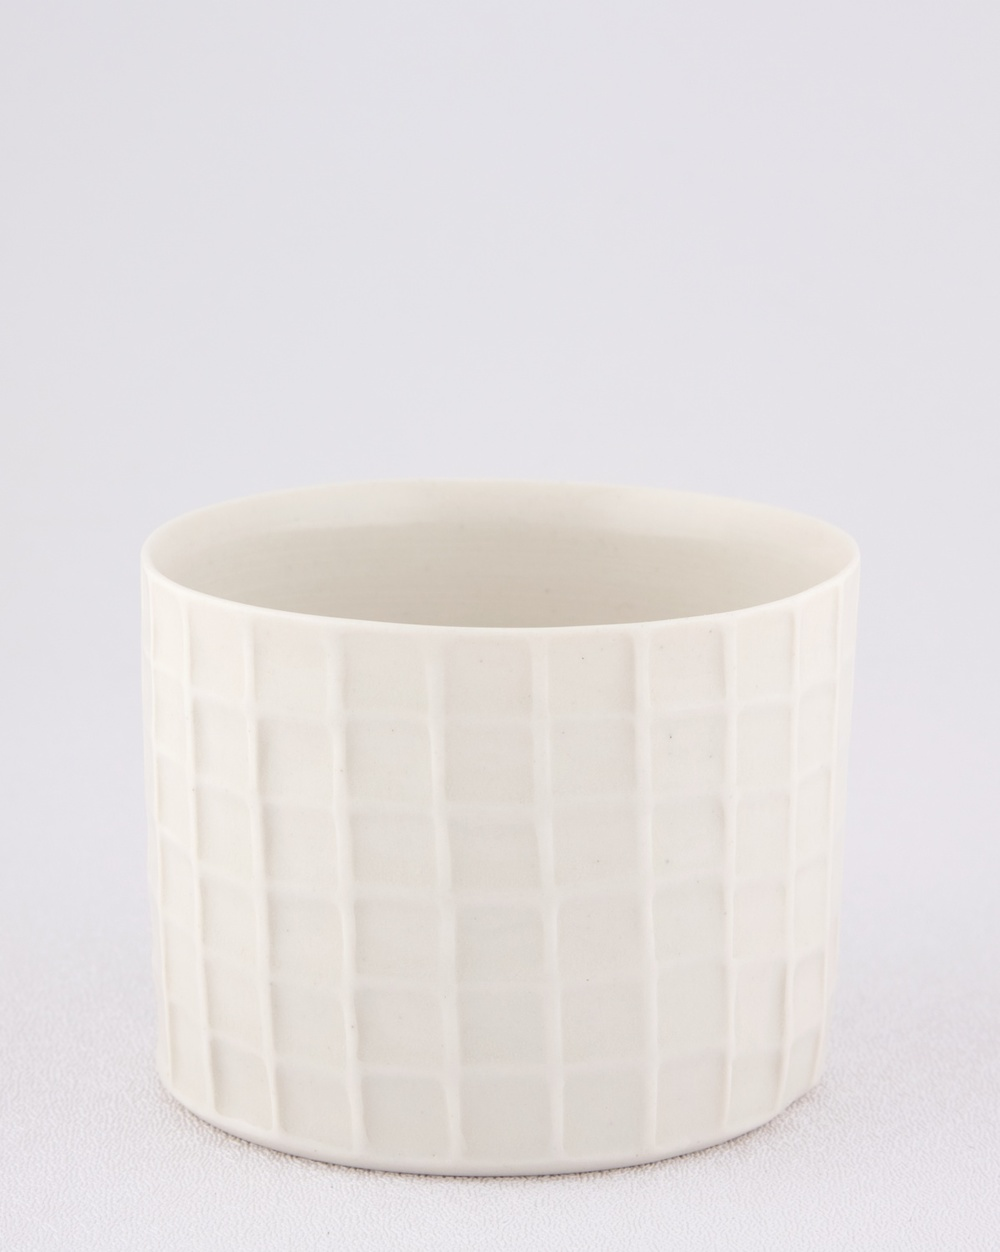 Shio Kusaka  Untitled (cup)  2009 Porcelain 2 ⅝h x 3 ½w in SK016